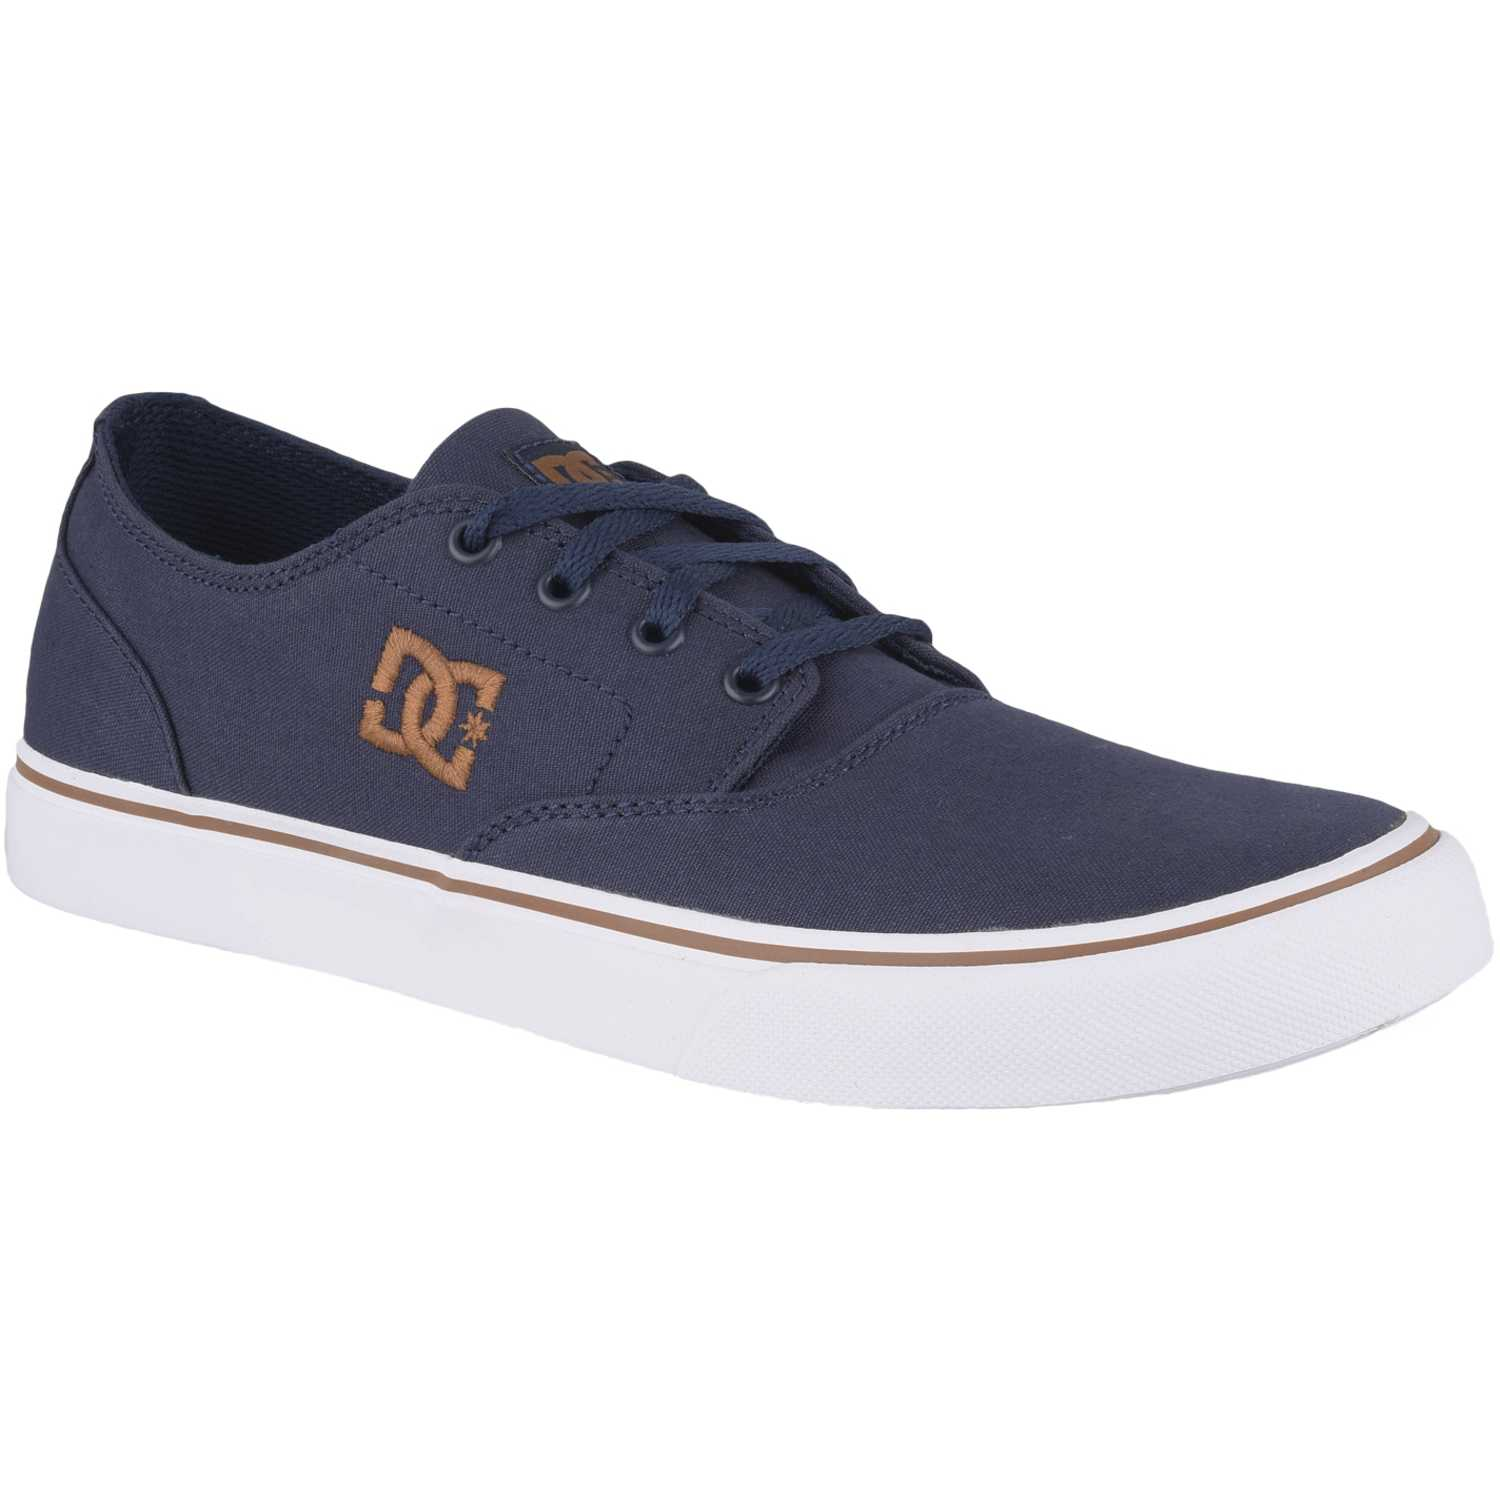 Dc - Chaussures Hommes, Bleu, Taille 39